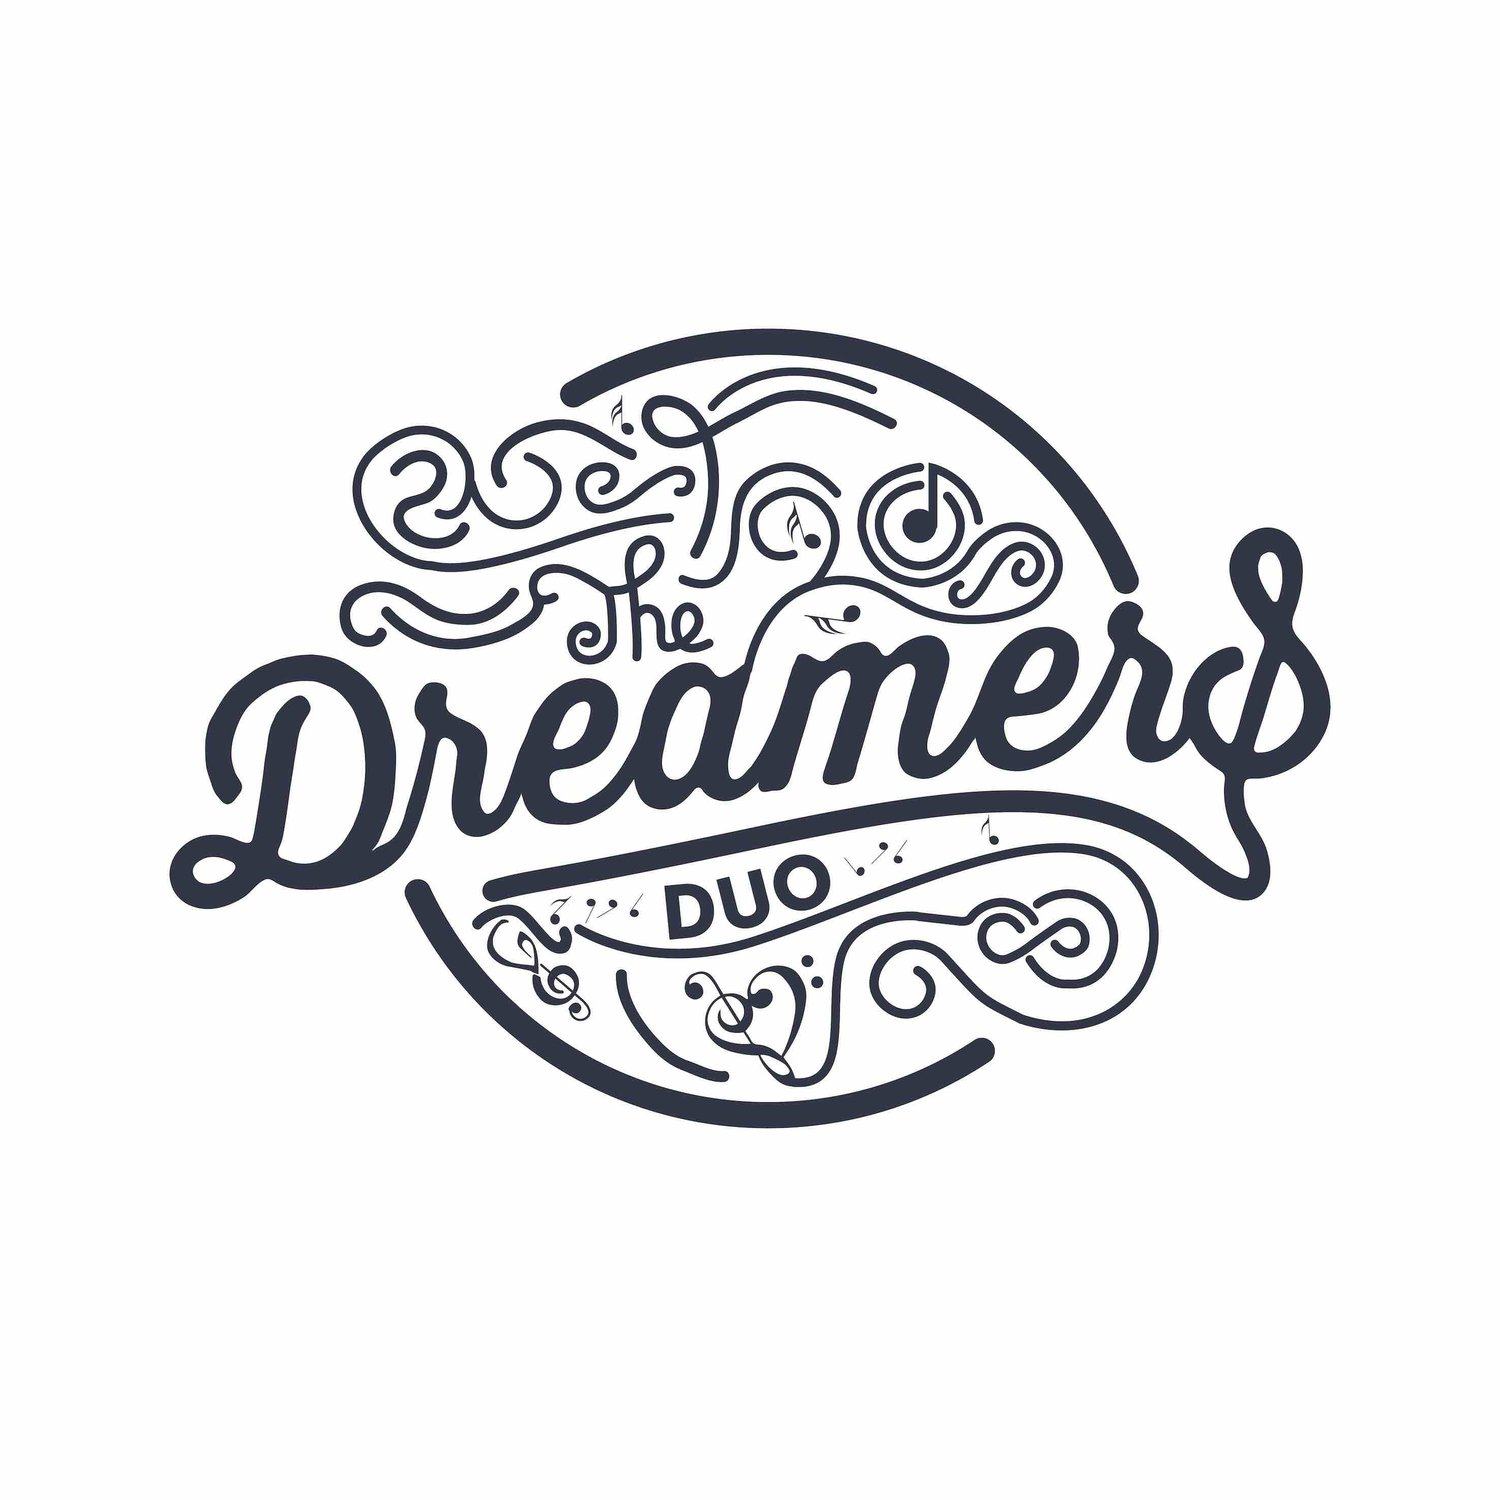 The Dreamers Duo, Professional Wedding Musicians based in Shropshire & the West Midlands